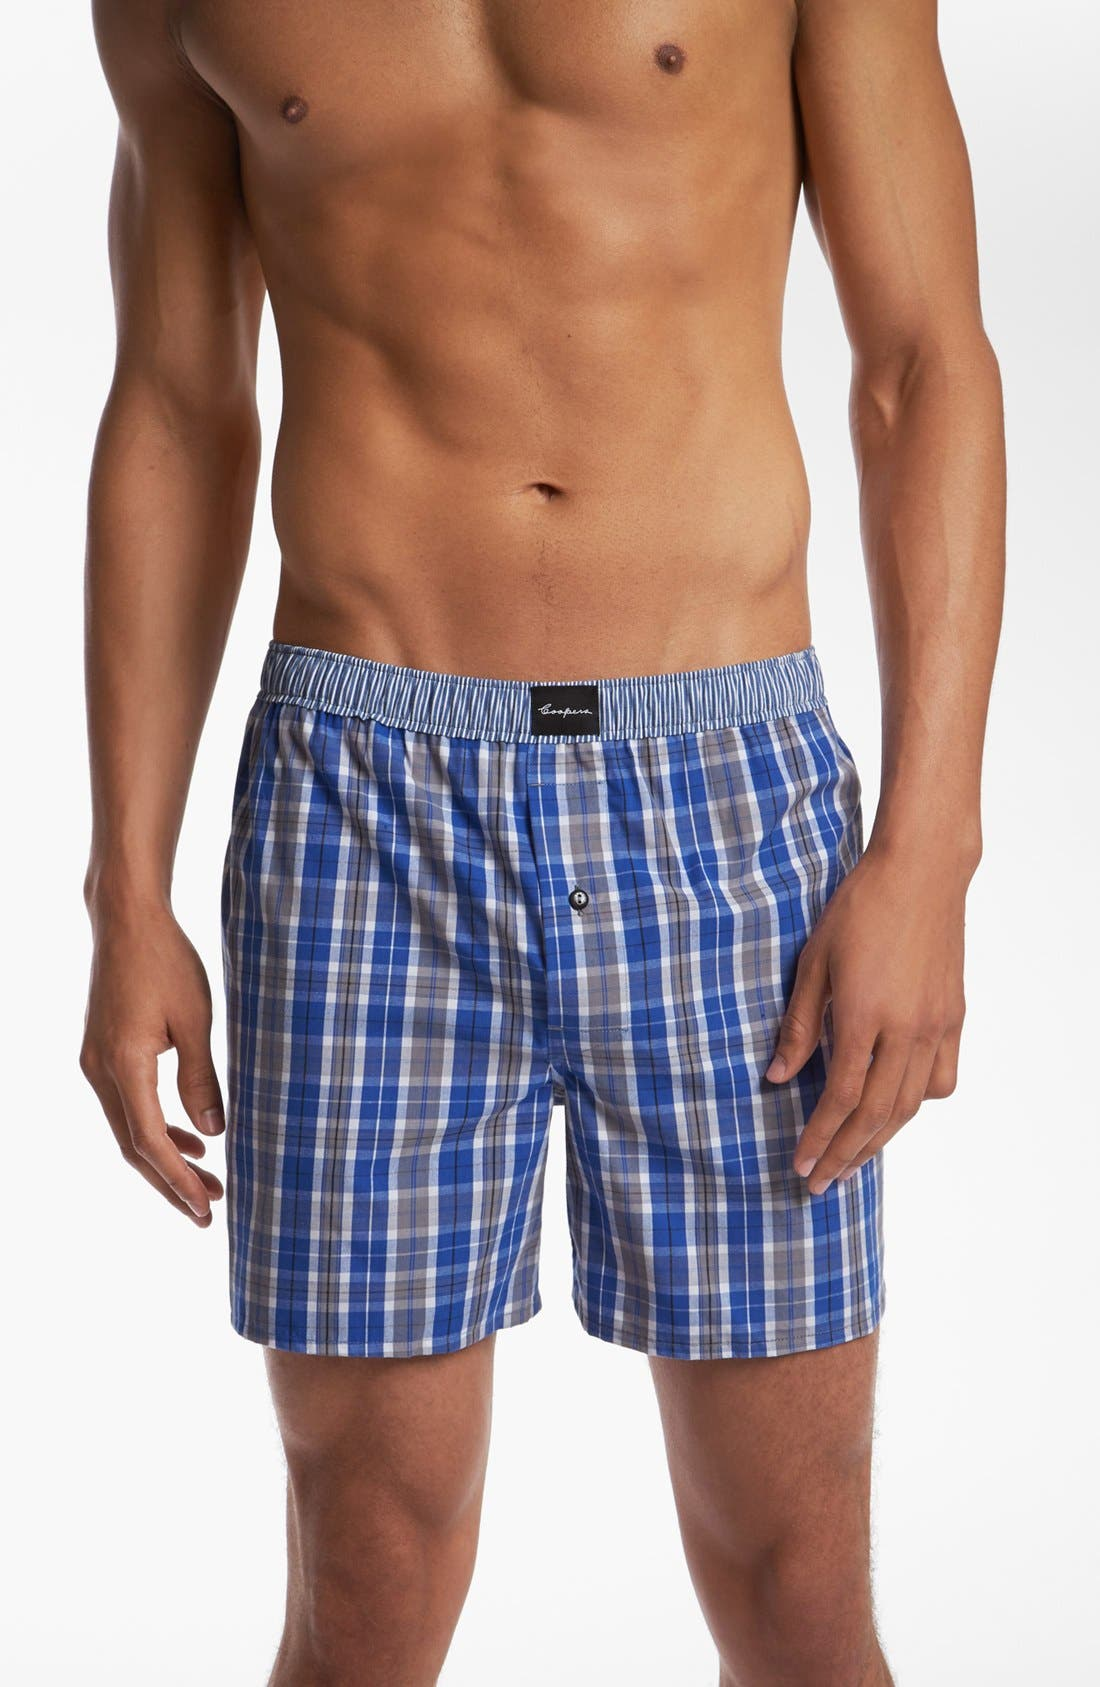 Main Image - Coopers by Jockey® Boxers